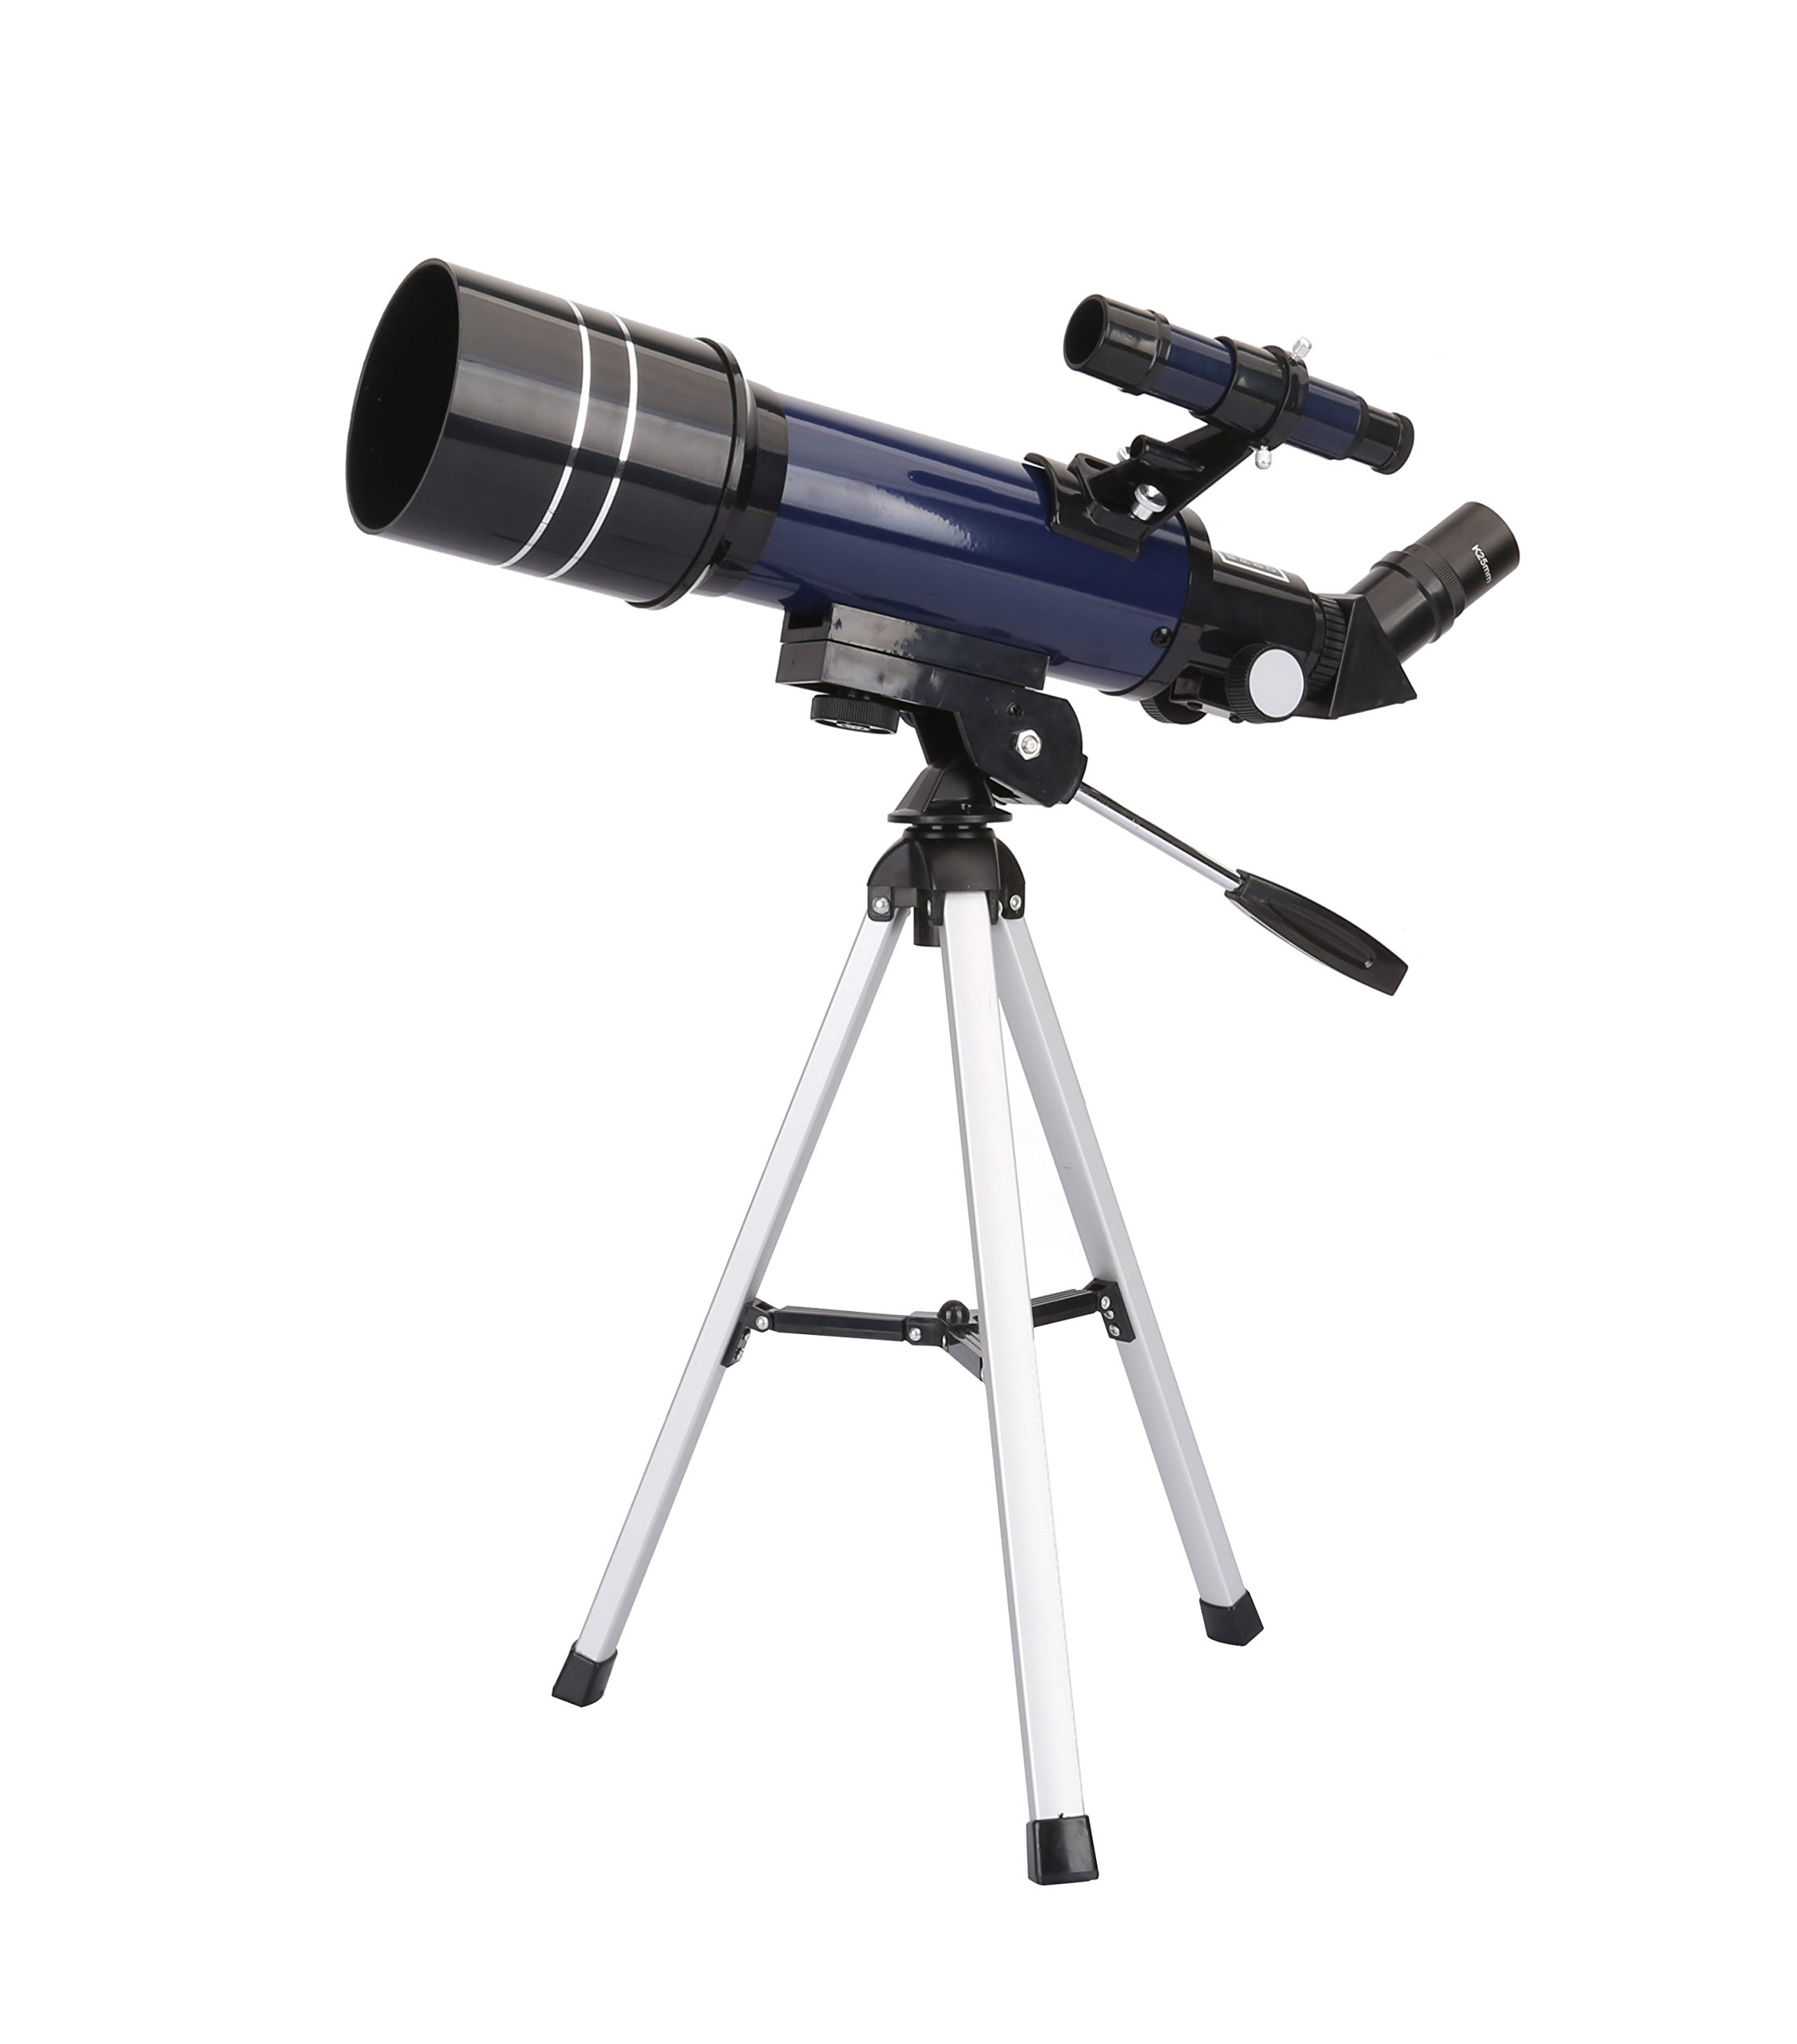 GEERTOP AZ Ultra-Clear Astronomical Refractor Tabletop Telescope With Tripod & Finder Scope, 400X70mm, For Beginner Sky Gazers & Teens